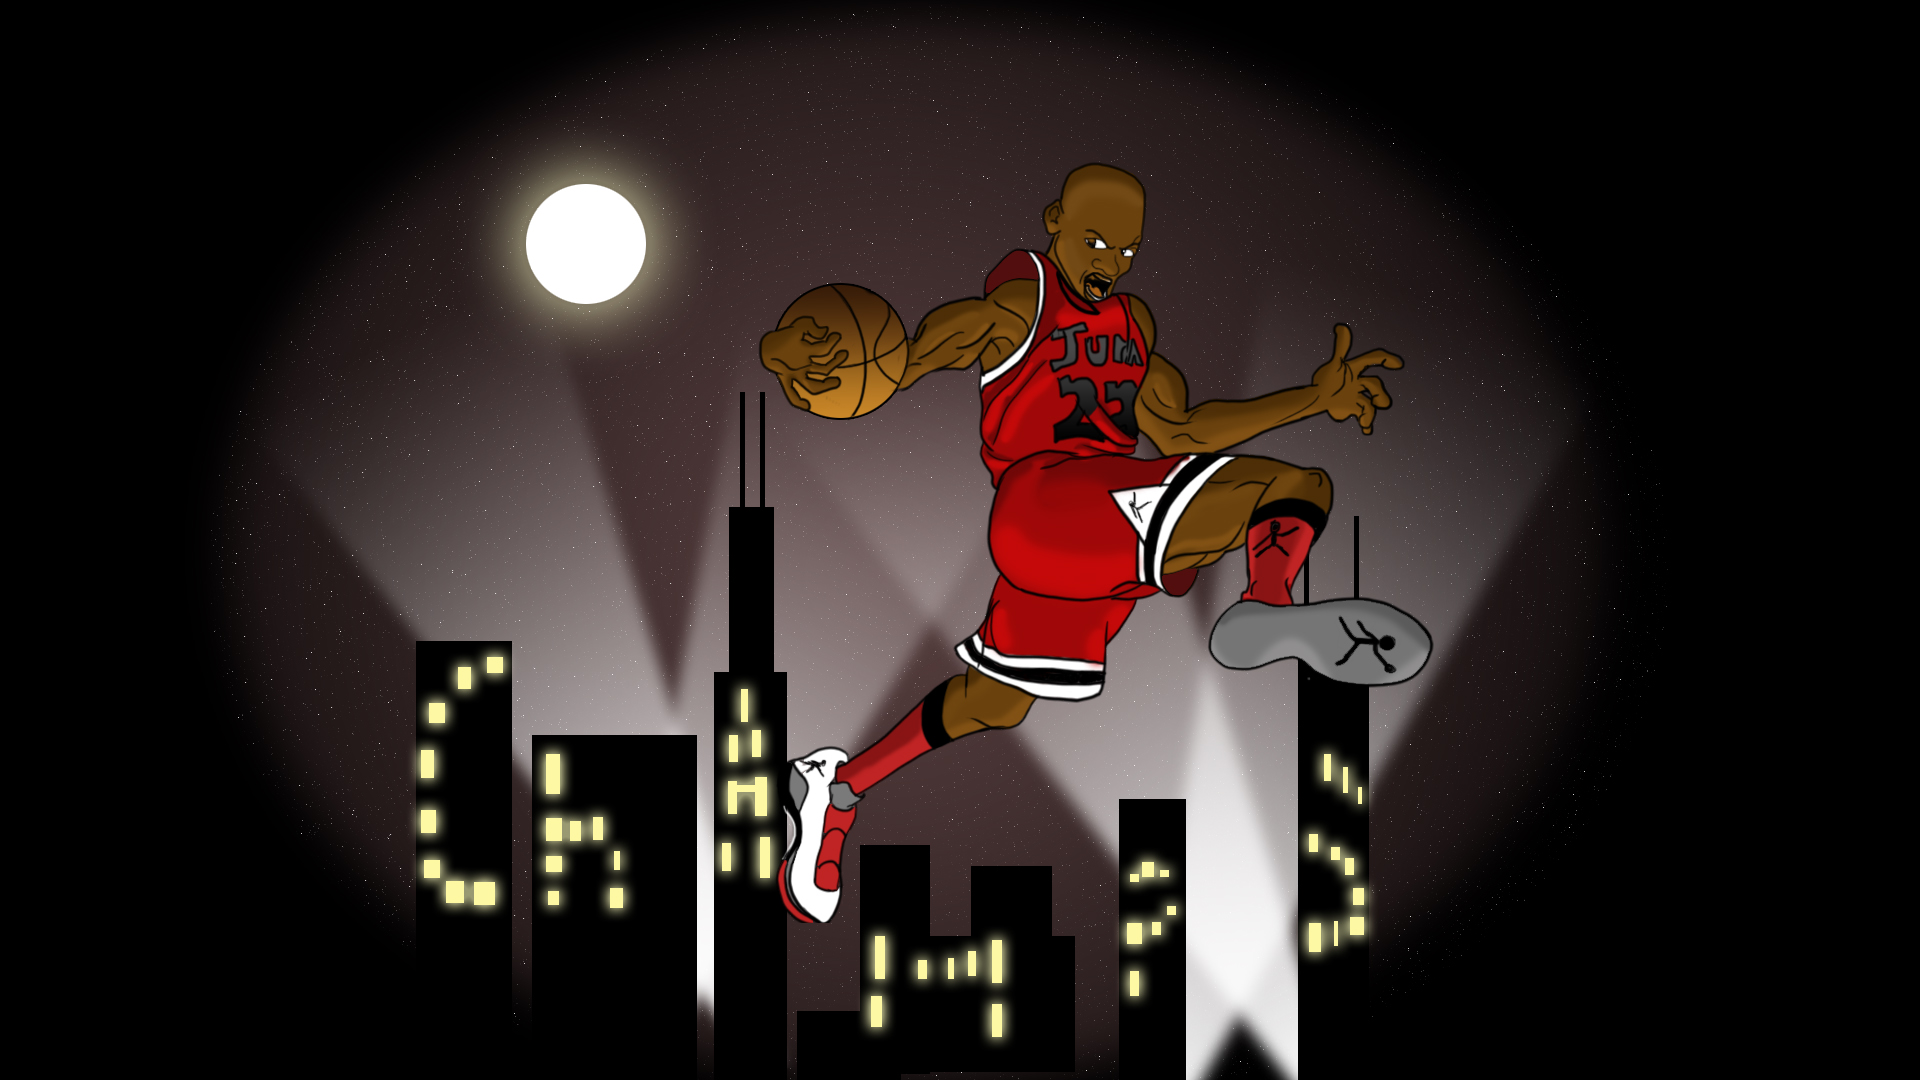 MJ Owns This City